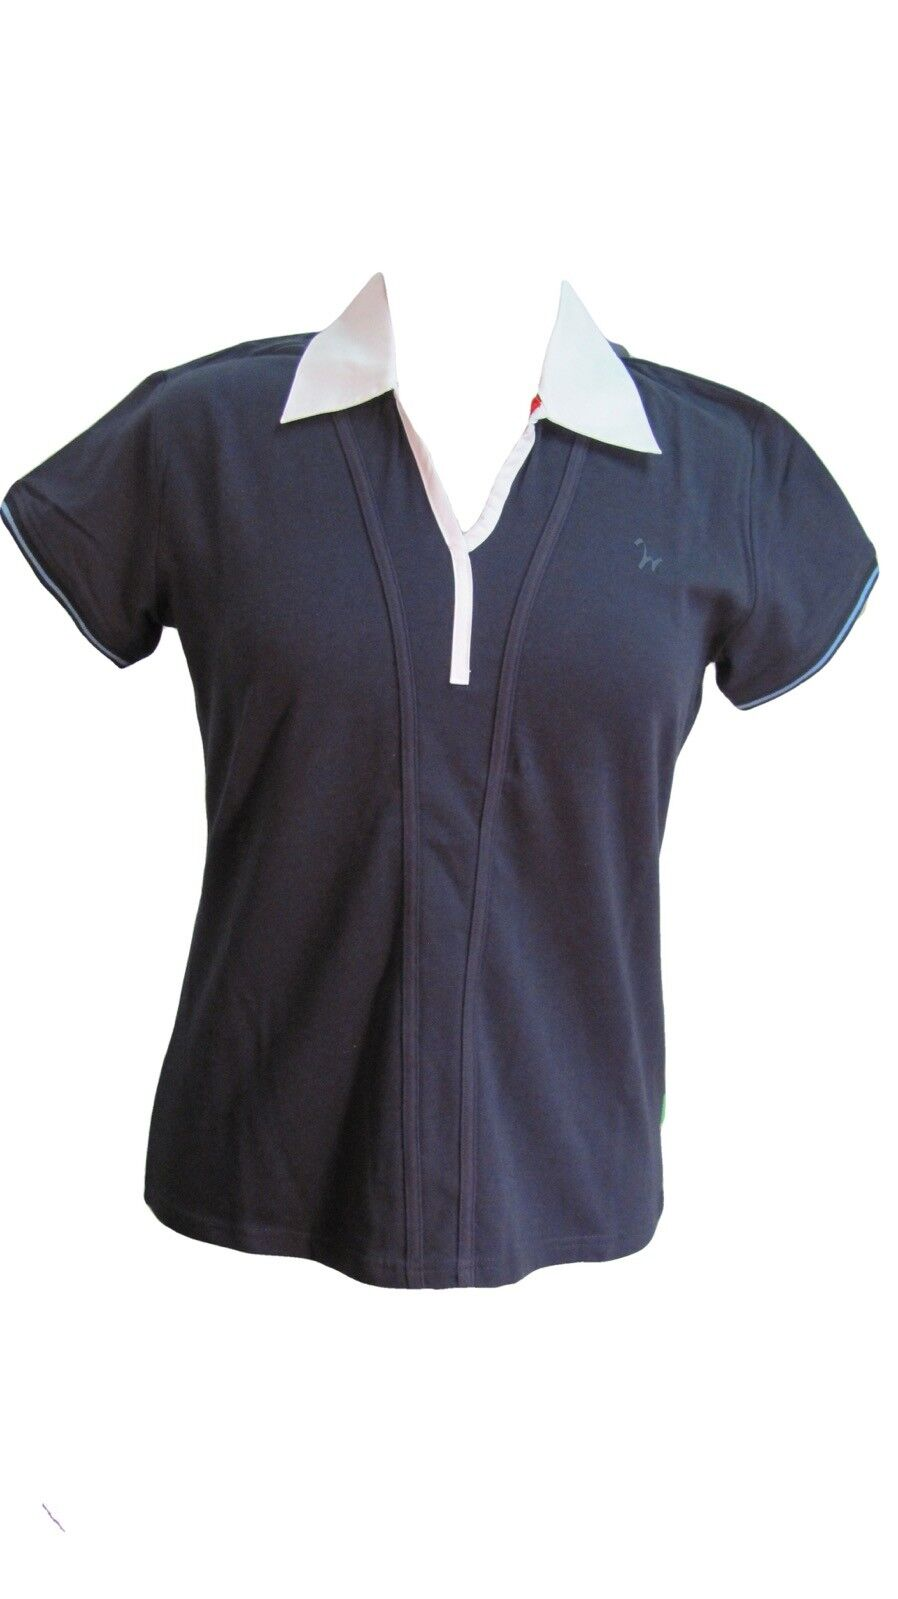 Isabell Werth Ideal Couture Equestrian Shirt, Navy, Short Sleeve, Womens L